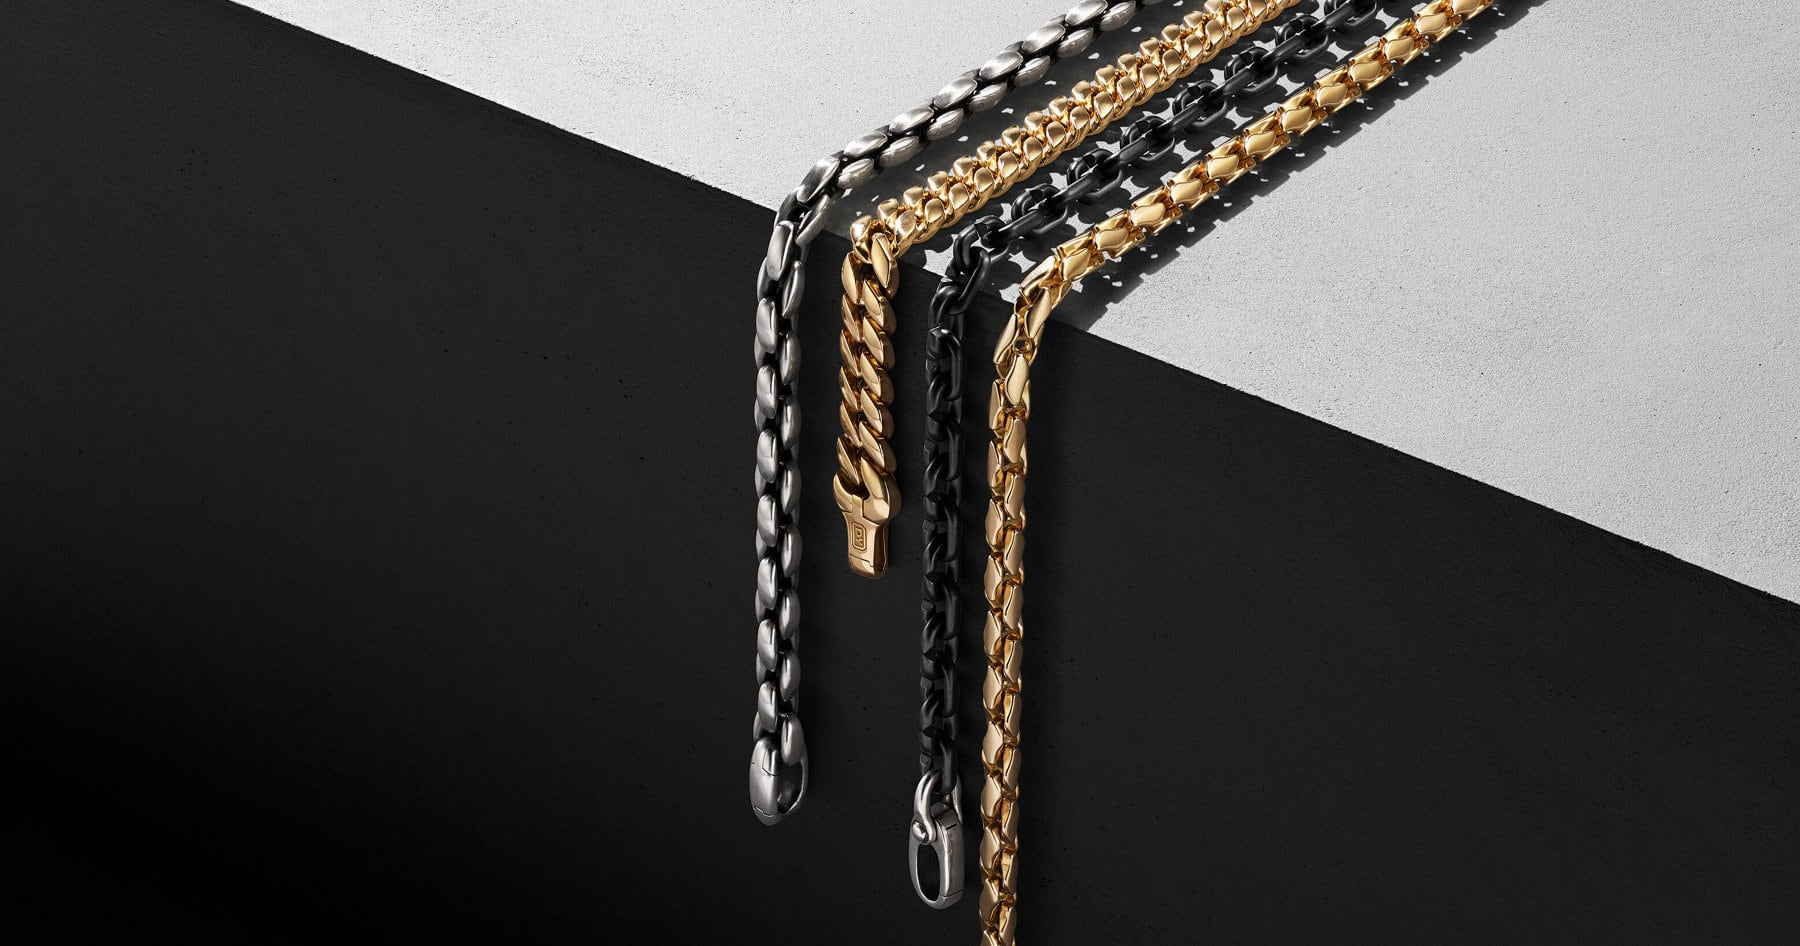 A color photo shows four David Yurman men's necklaces from the Chain collection arranged in rows next to each other draped over a gray concrete surface. Two box-chain necklaces are crafted from sterling silver or 18K yellow gold. One curb-link chain is crafted from 18K yellow gold. The final link-chain is crafted from black titanium with sterling silver.